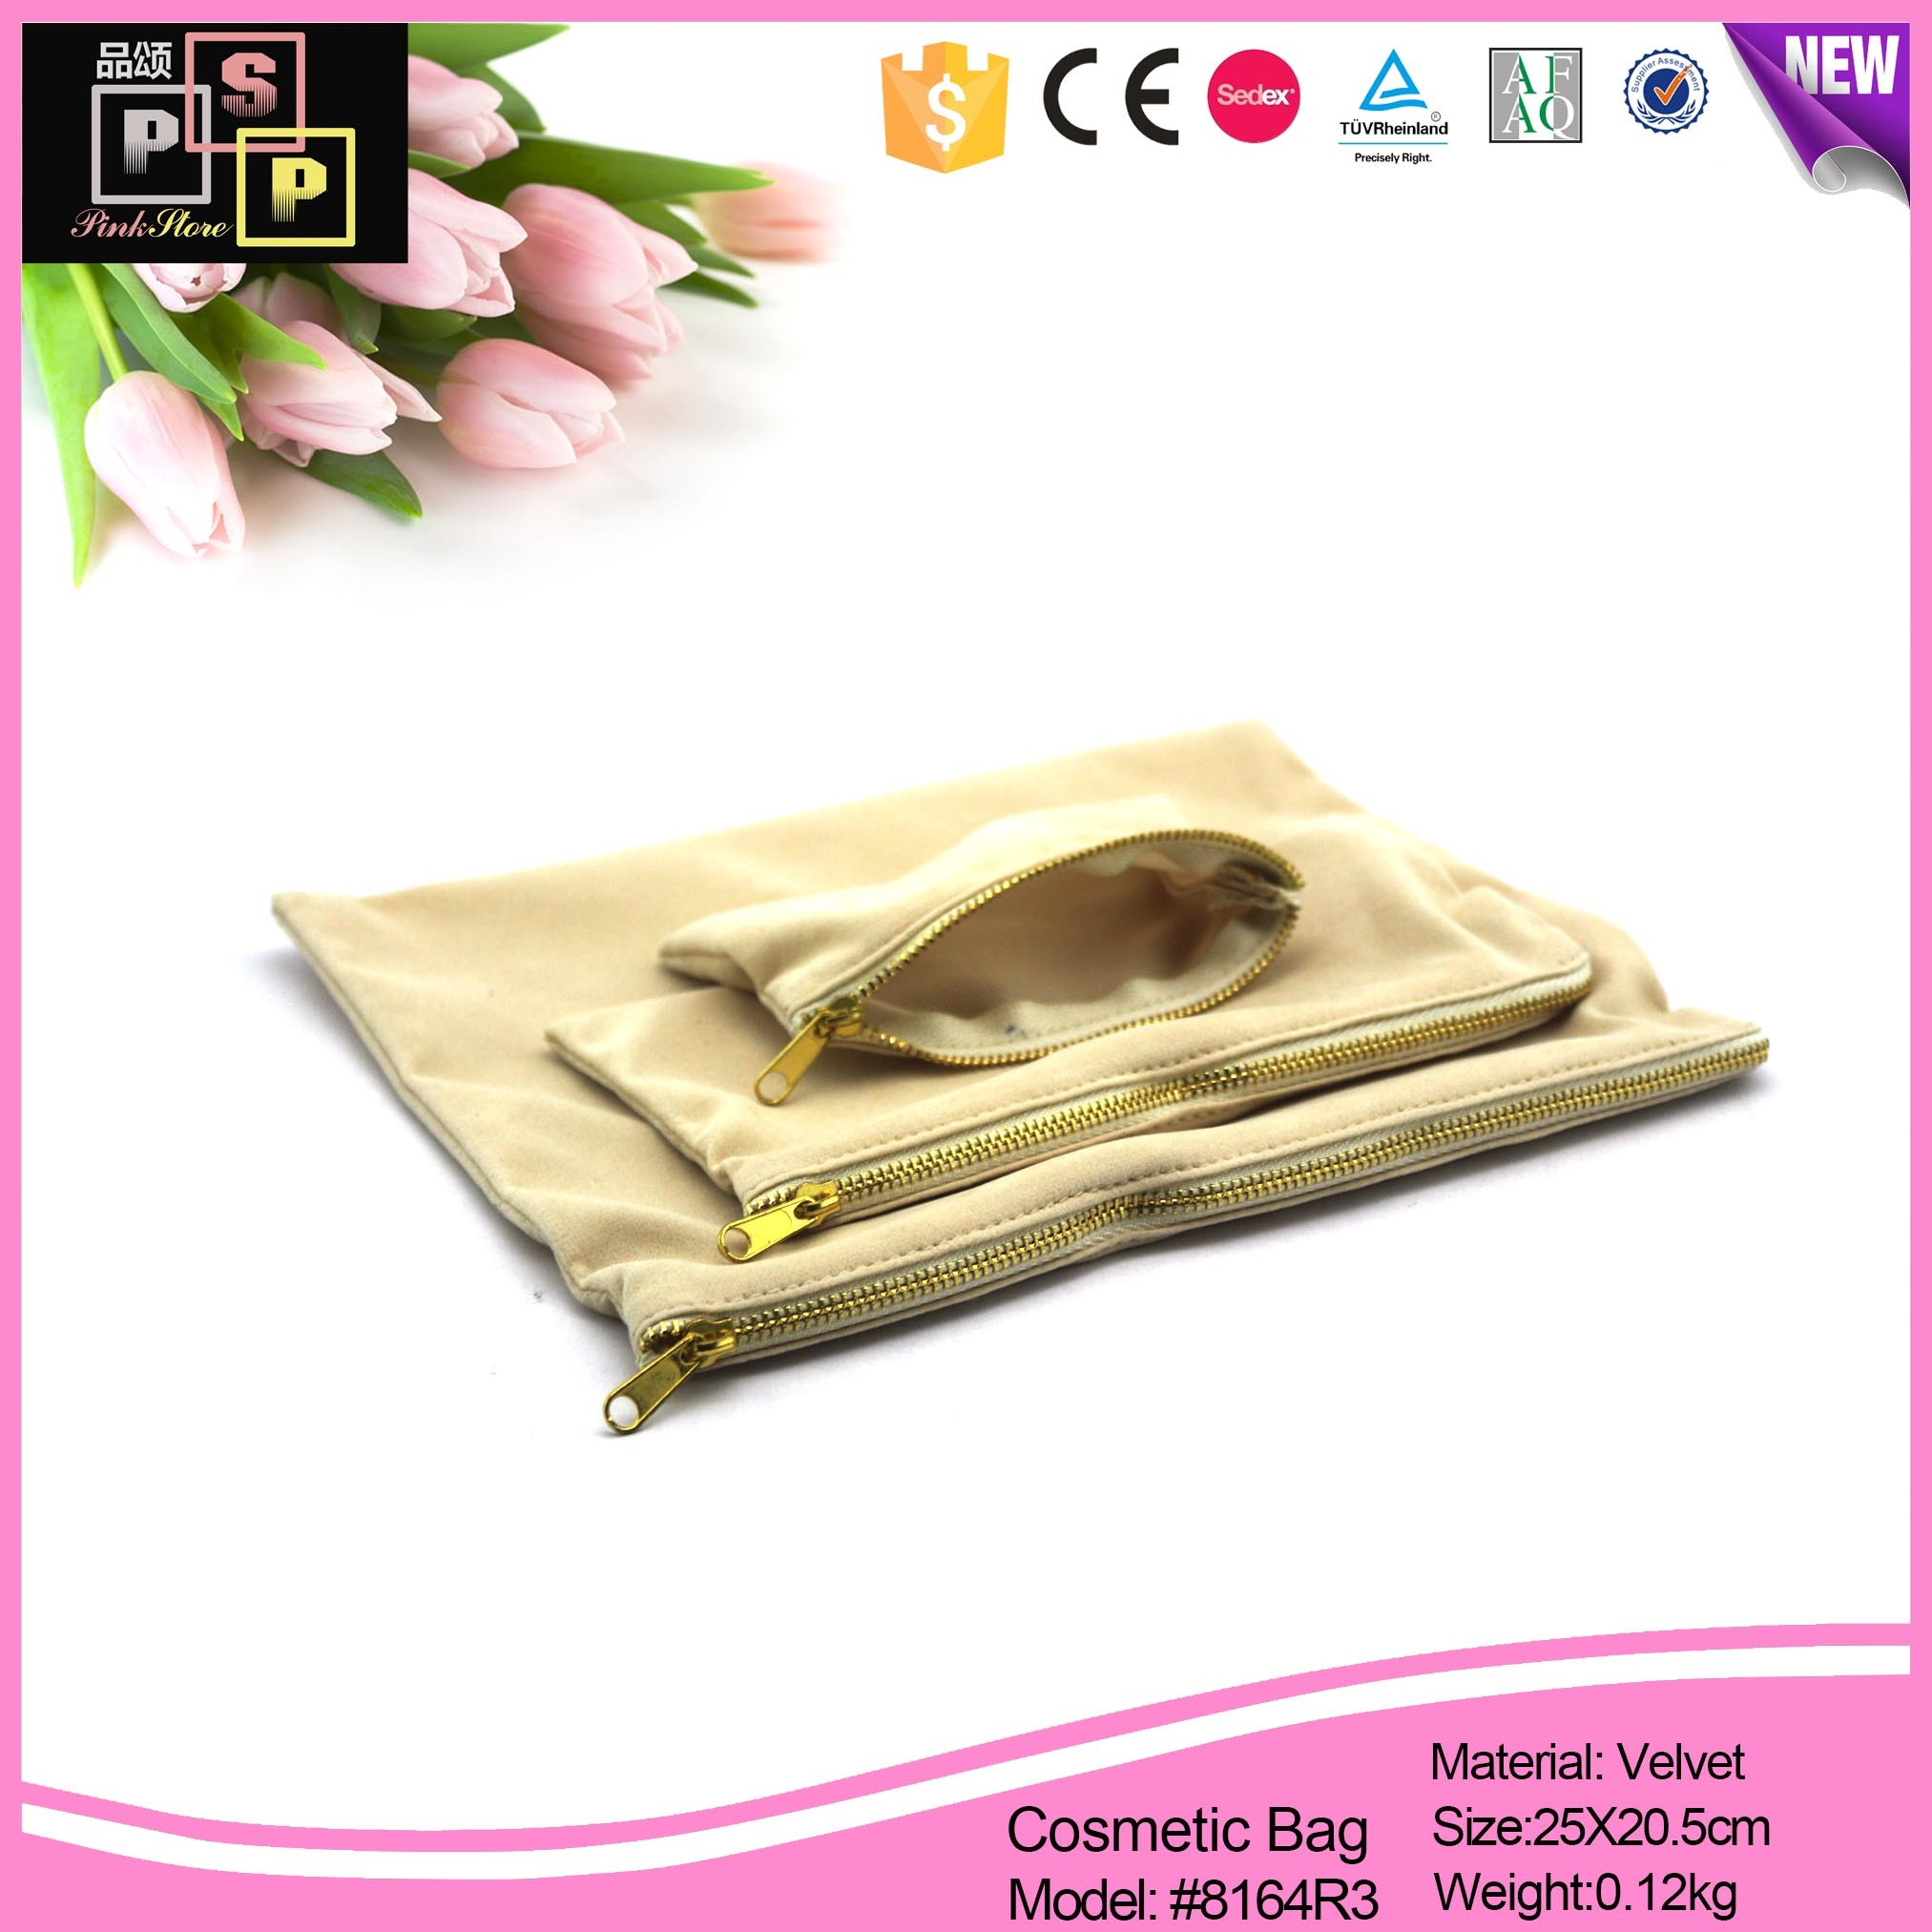 Gift Bag Satin Bag Cotton Bag (8164)